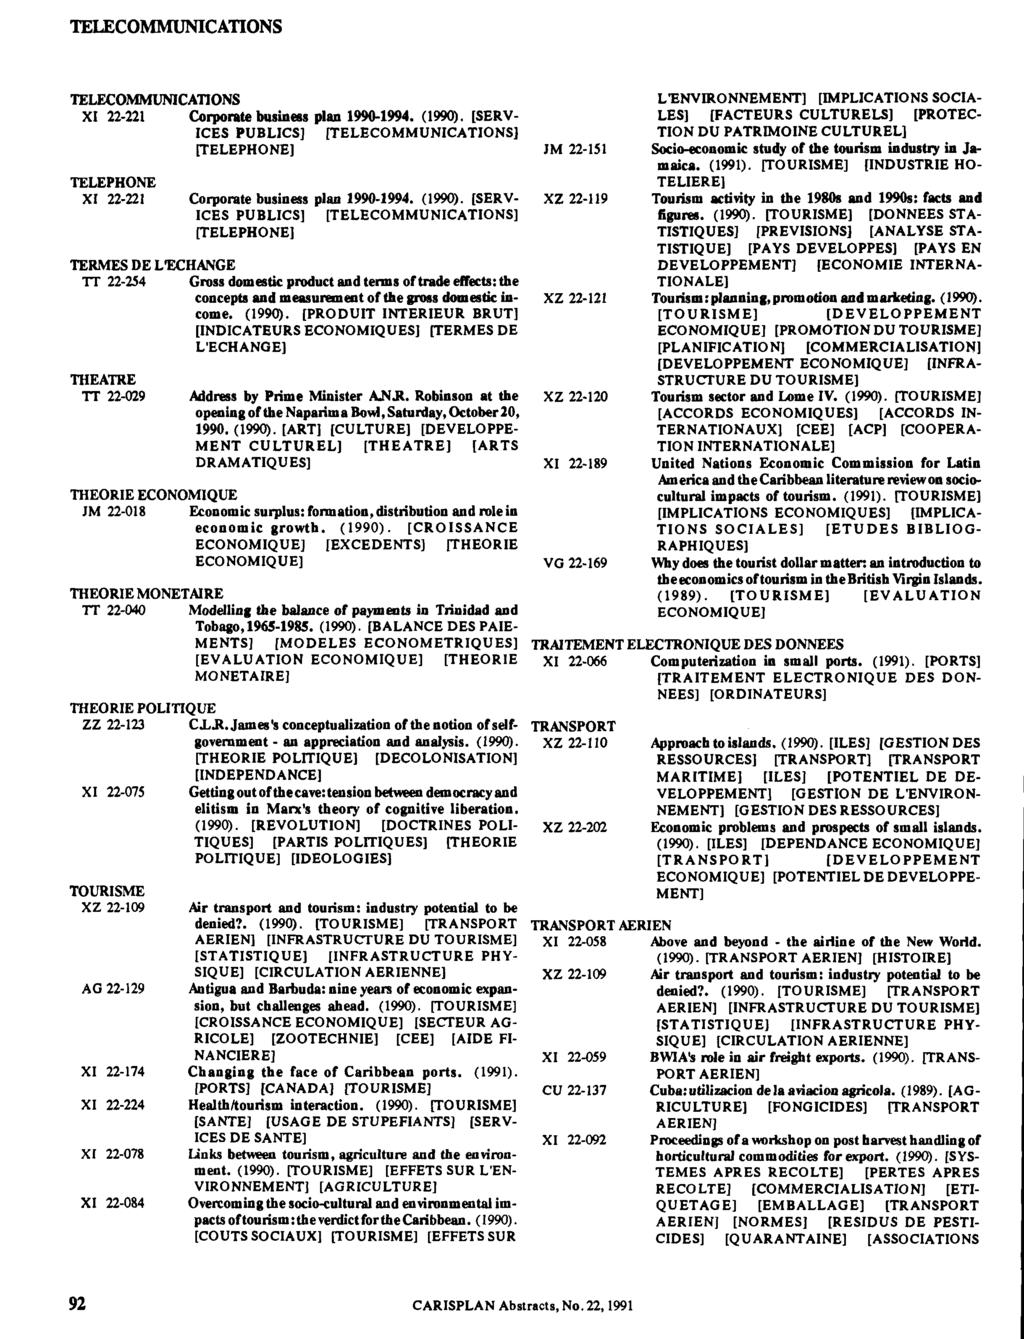 TELECOMMUNICATIONS TELECOMMUNICATIONS XI 22-221 Corporate business plan 1990-1994. (1990). [SERV ICES PUBLICS] [TELECOMMUNICATIONS] [TELEPHONE] TELEPHONE XI 22-221 Corporate business plan 1990-1994.